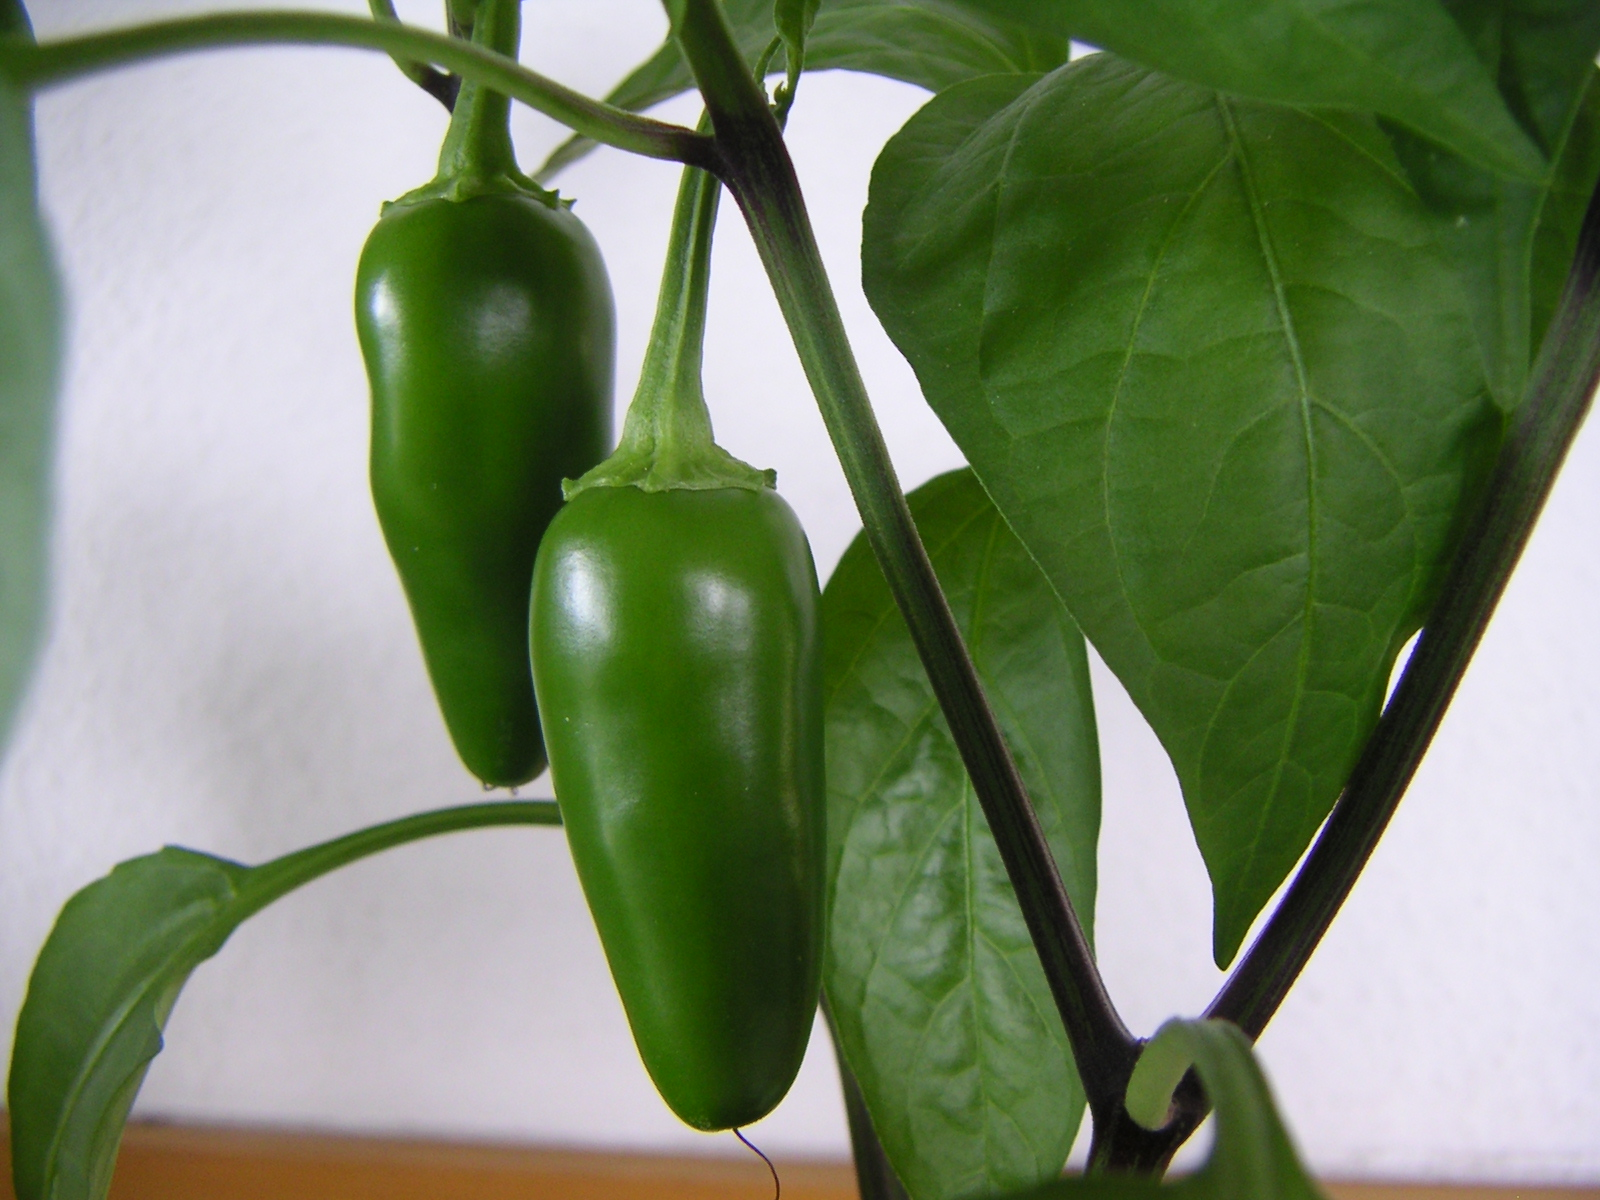 https://upload.wikimedia.org/wikipedia/commons/d/d6/Immature_jalapeno_capsicum_annuum_var_annuum.jpeg